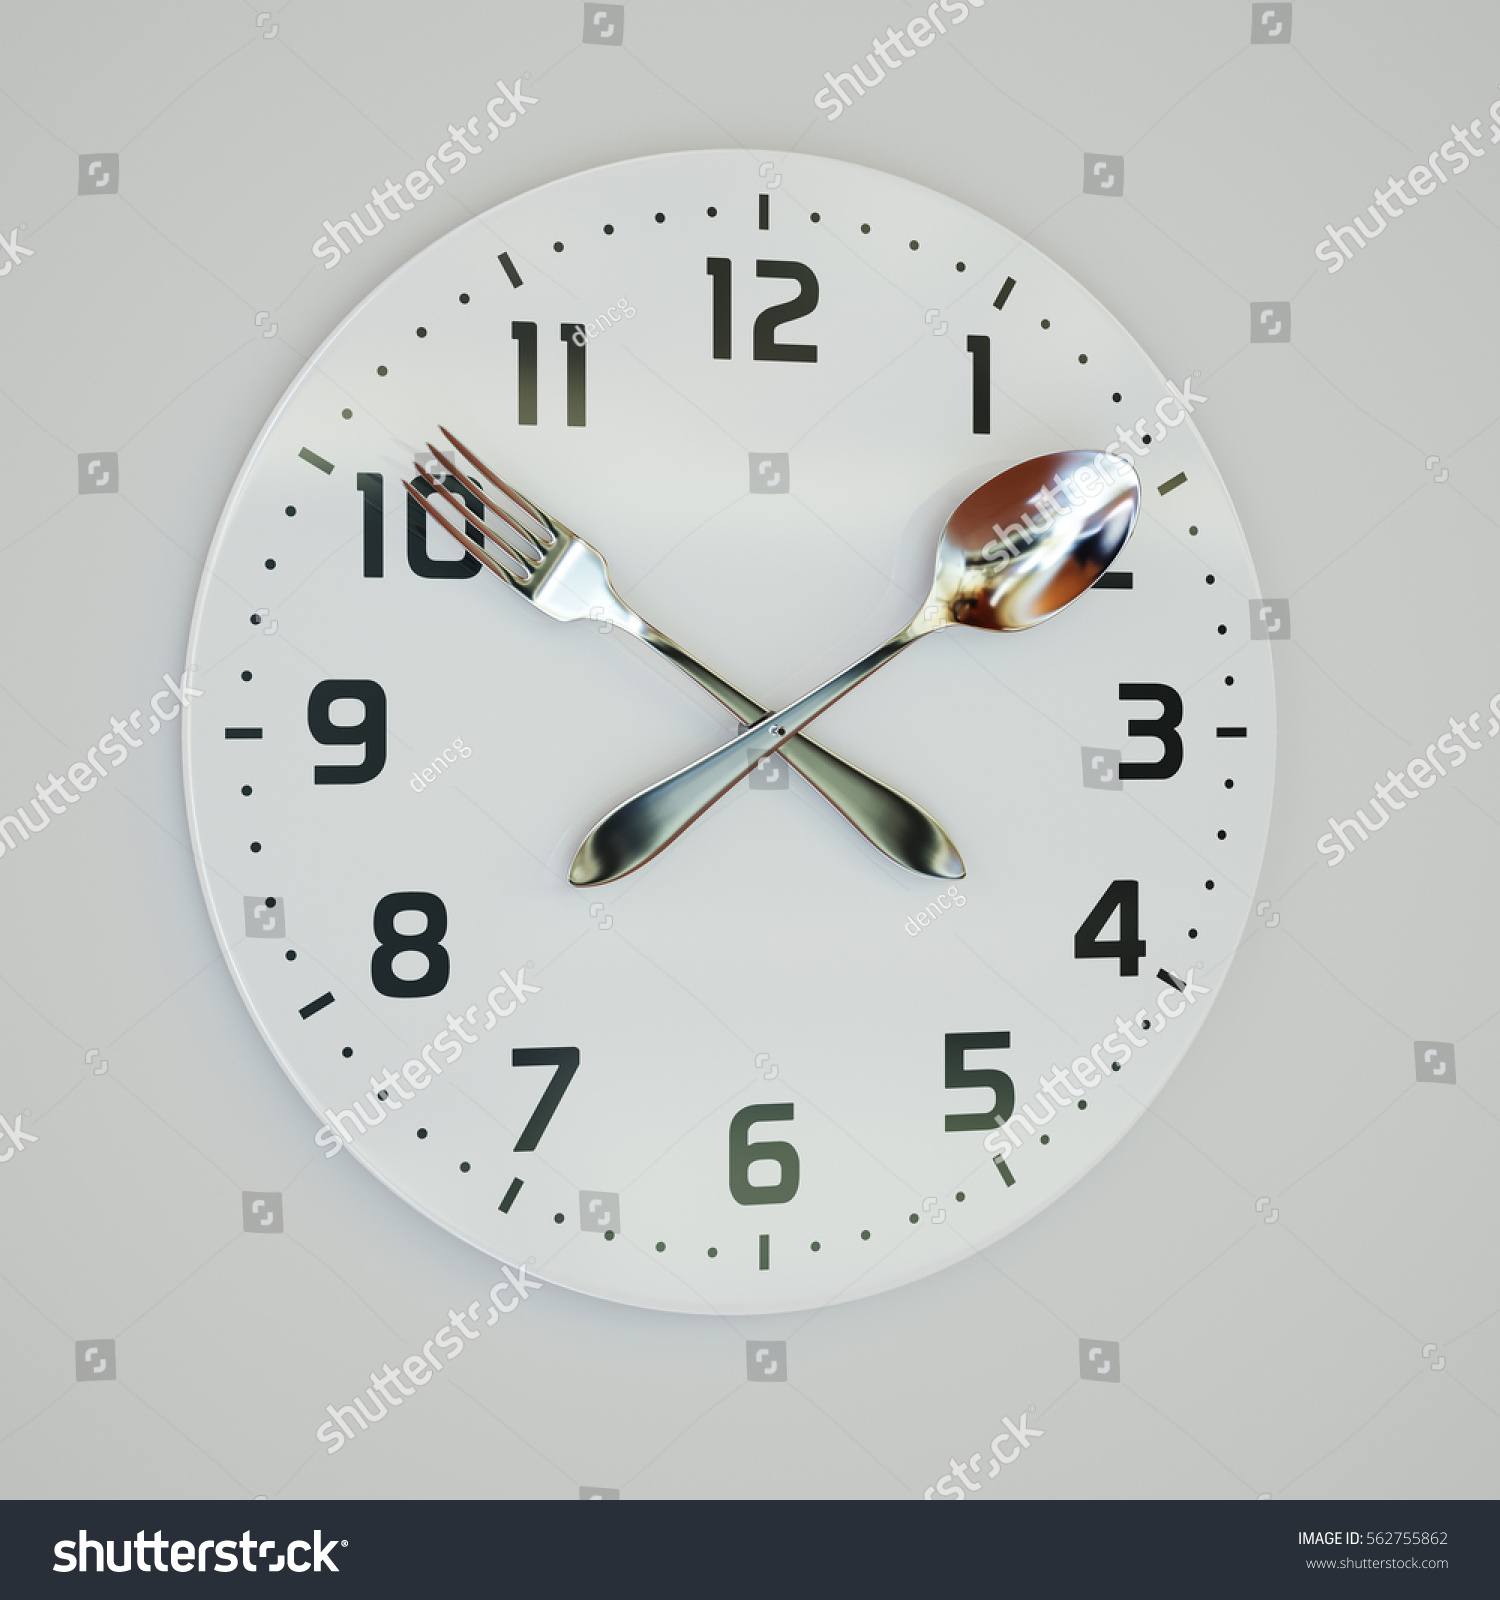 3d rendering illustration fork spoon clock stock illustration 3d rendering illustration of fork and spoon clock on the wall amipublicfo Gallery